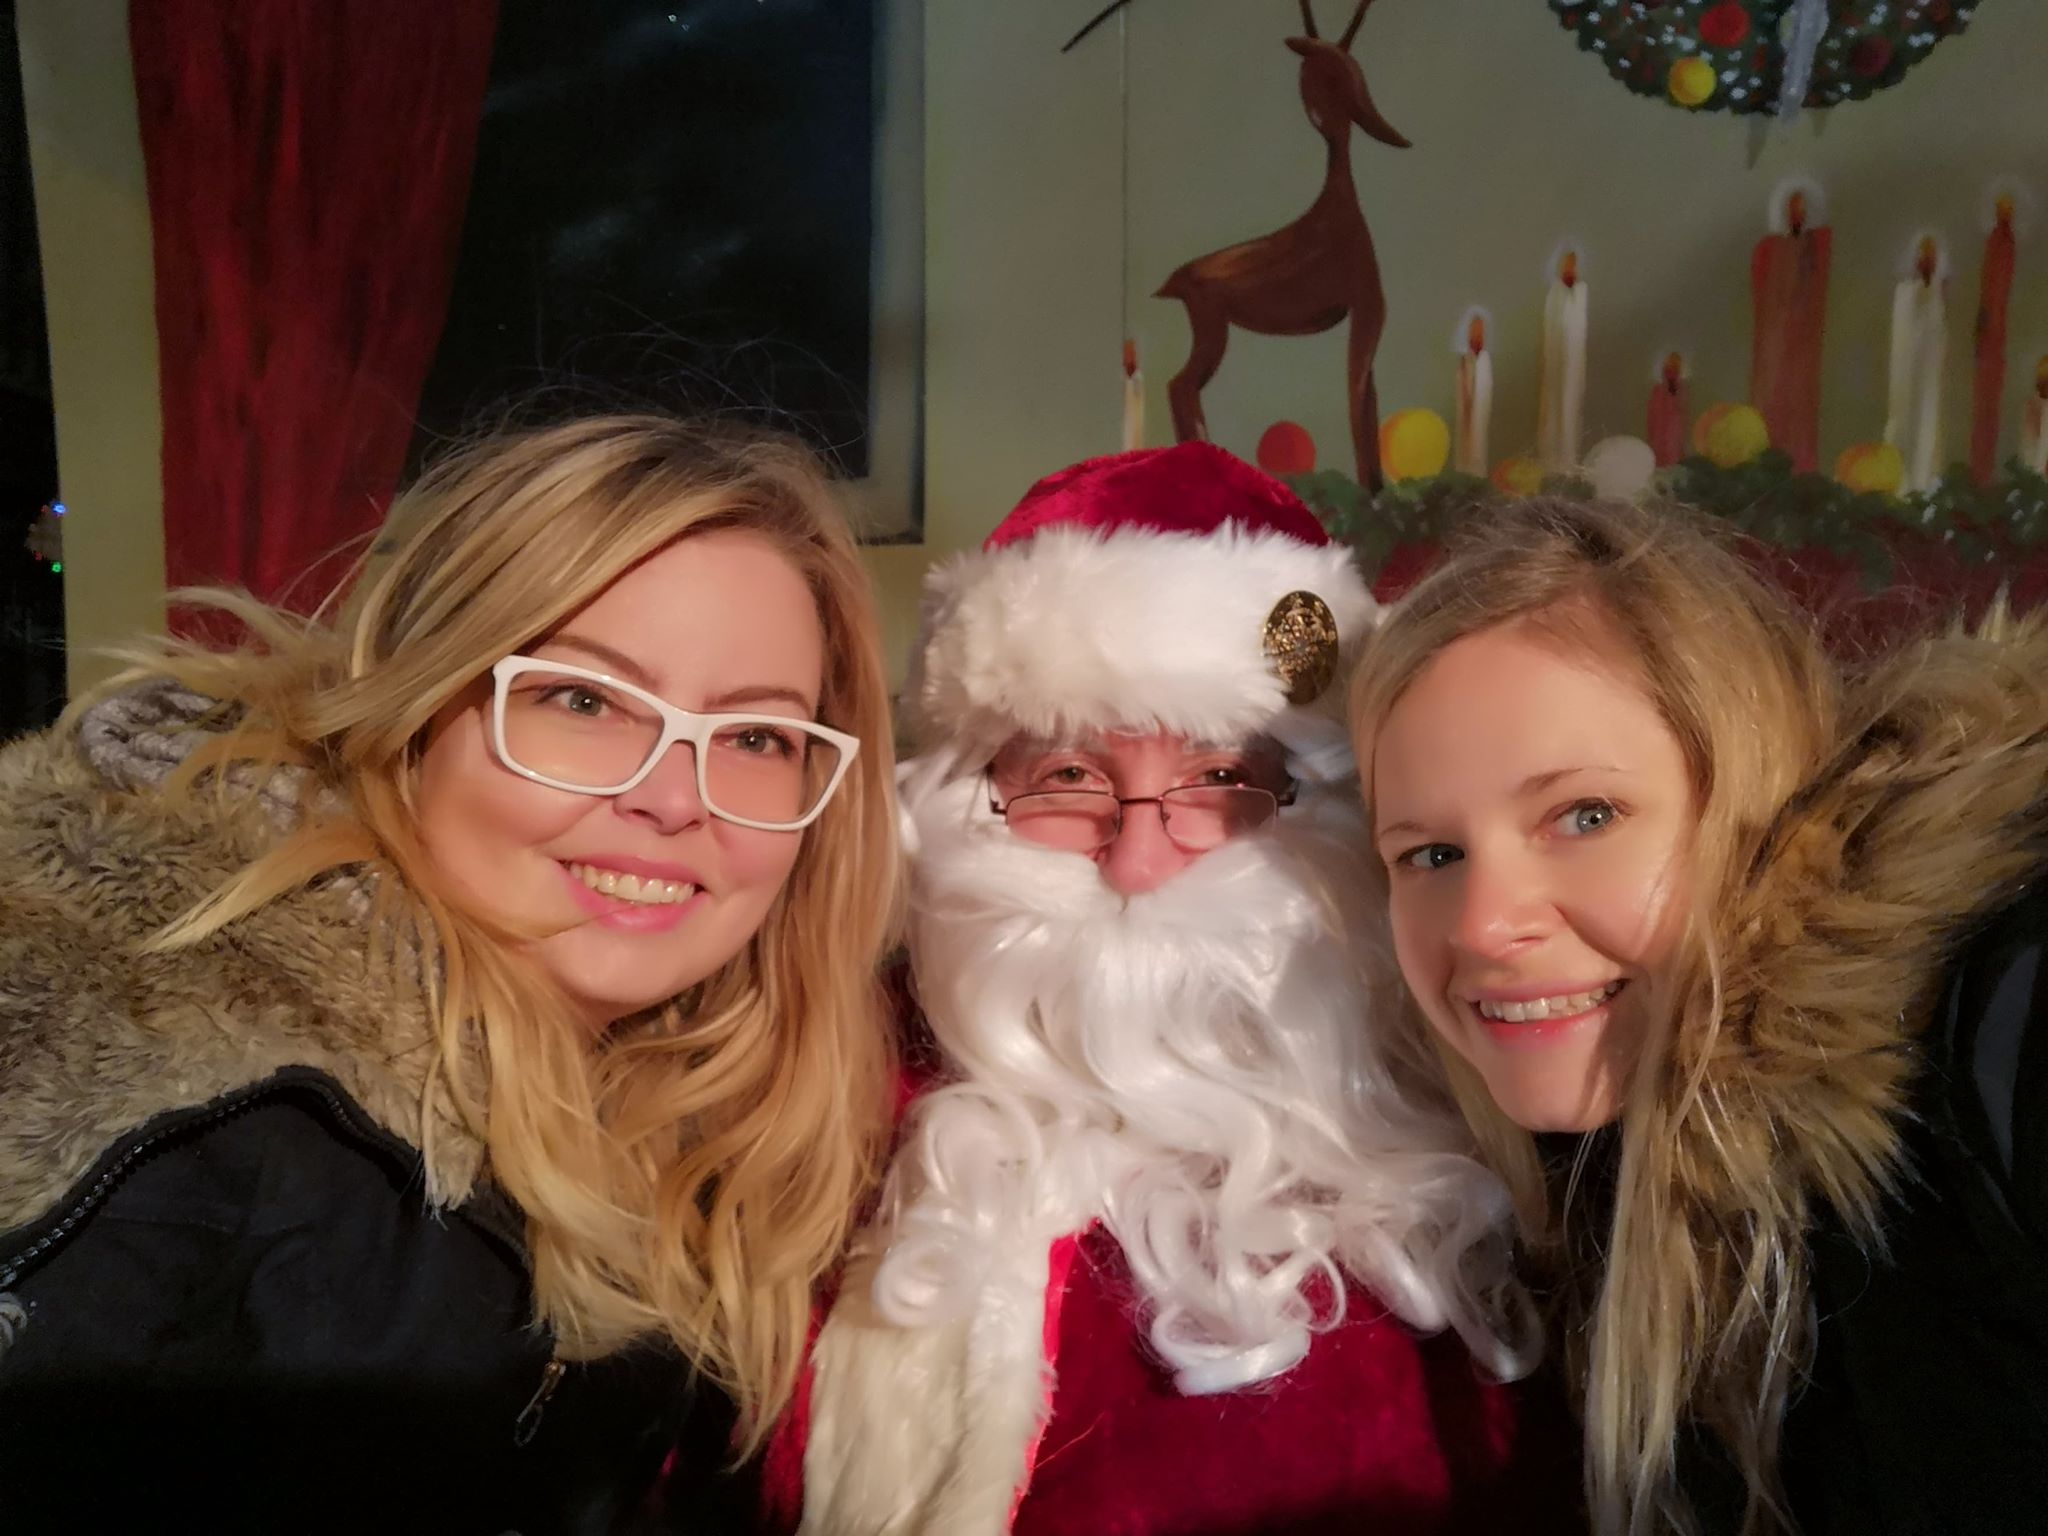 From left: Leigh, Santa and Kristin. This is Leigh's first real picture taken with Santa!